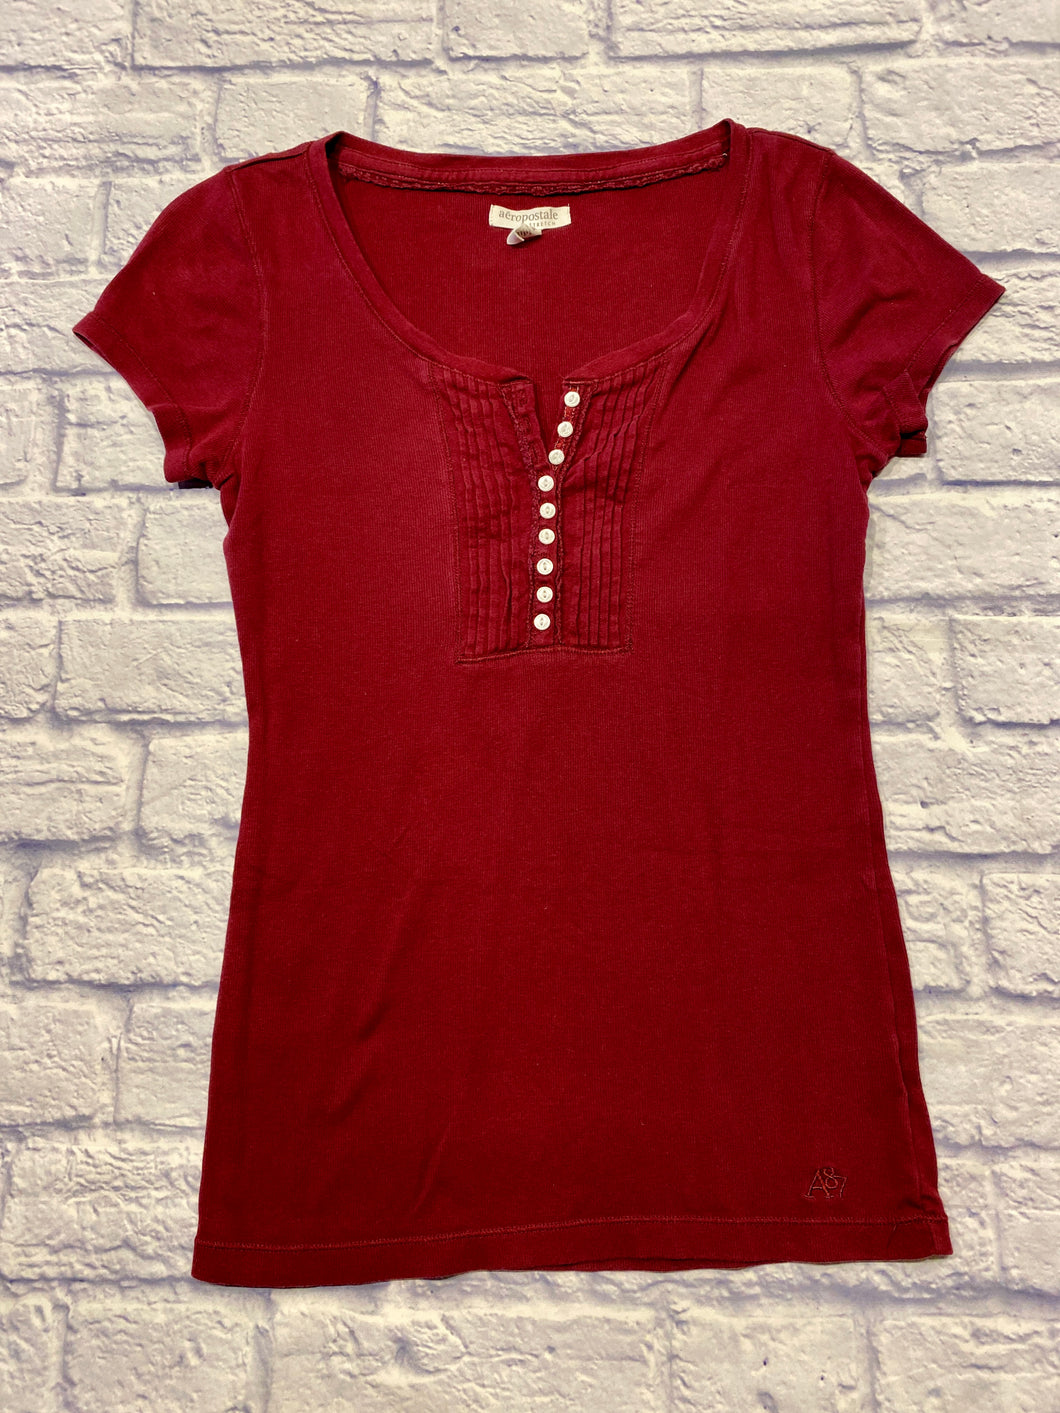 Aeropostale maroon t-shirt with pleat detail and half buttons up front.  Logo on left hip hem.